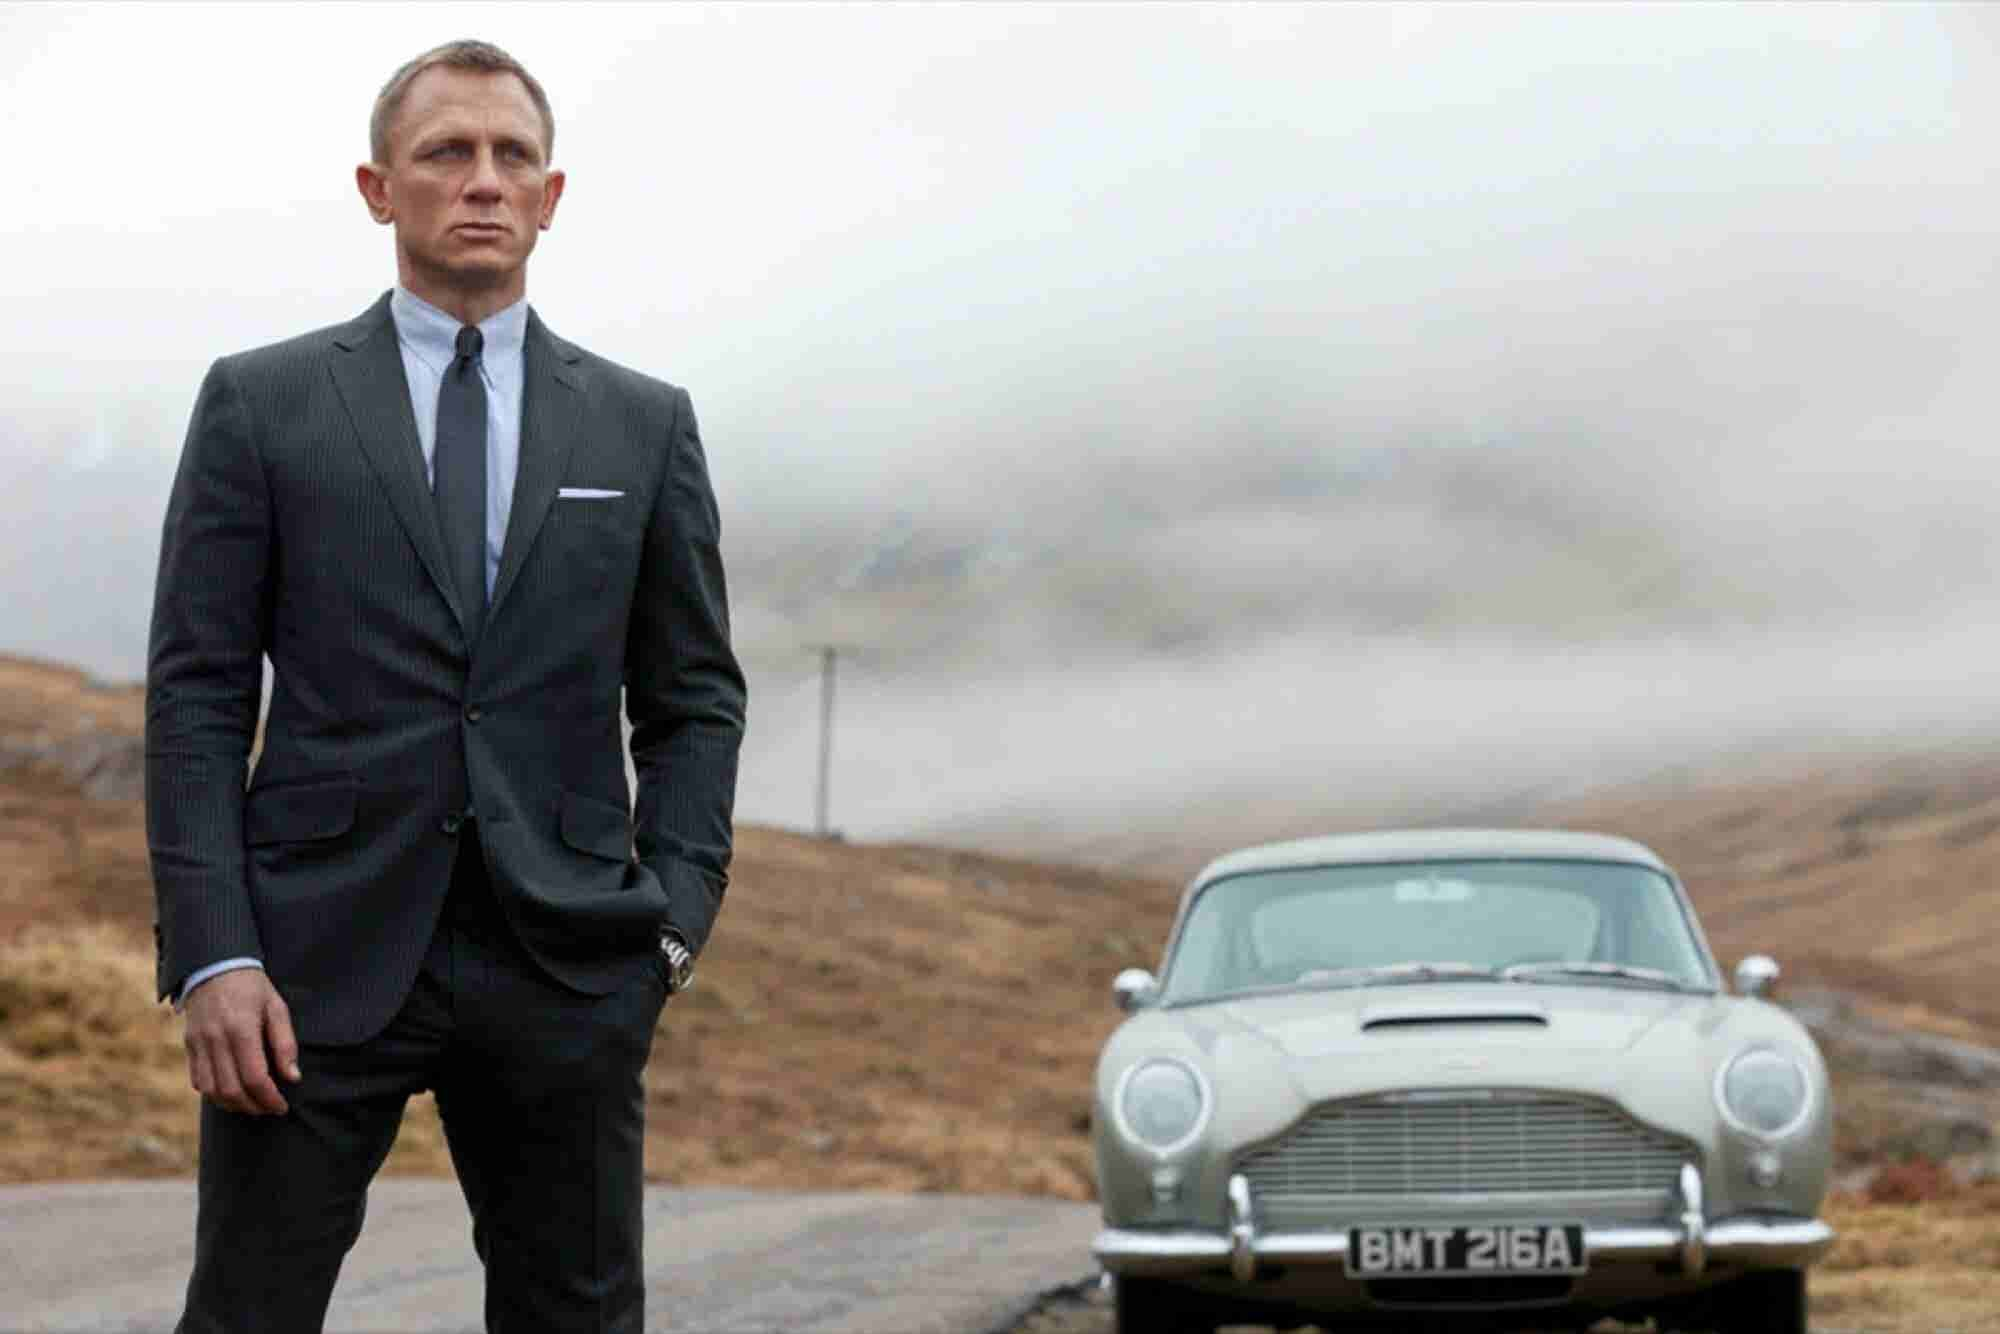 What Would James Bond Do? Channel the Charisma of 007 in Your Website Marketing.